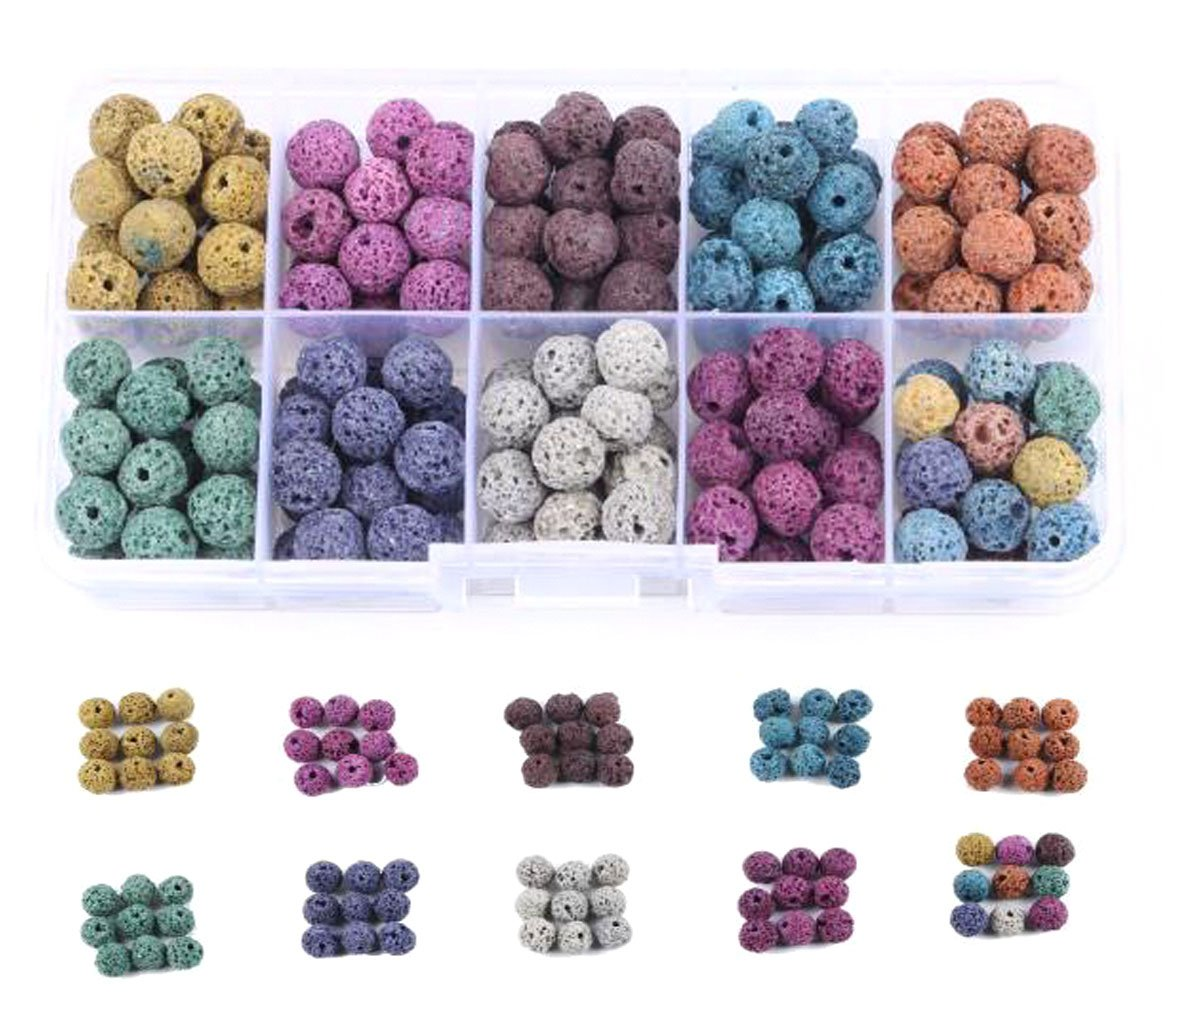 1 Box (Approx 180 Pcs) Multicolor Lava Stone Beads Round Rock Beads - 8mm Volcanic Loose Beads for Necklace Bracelet Jewelry Making Nicedmm